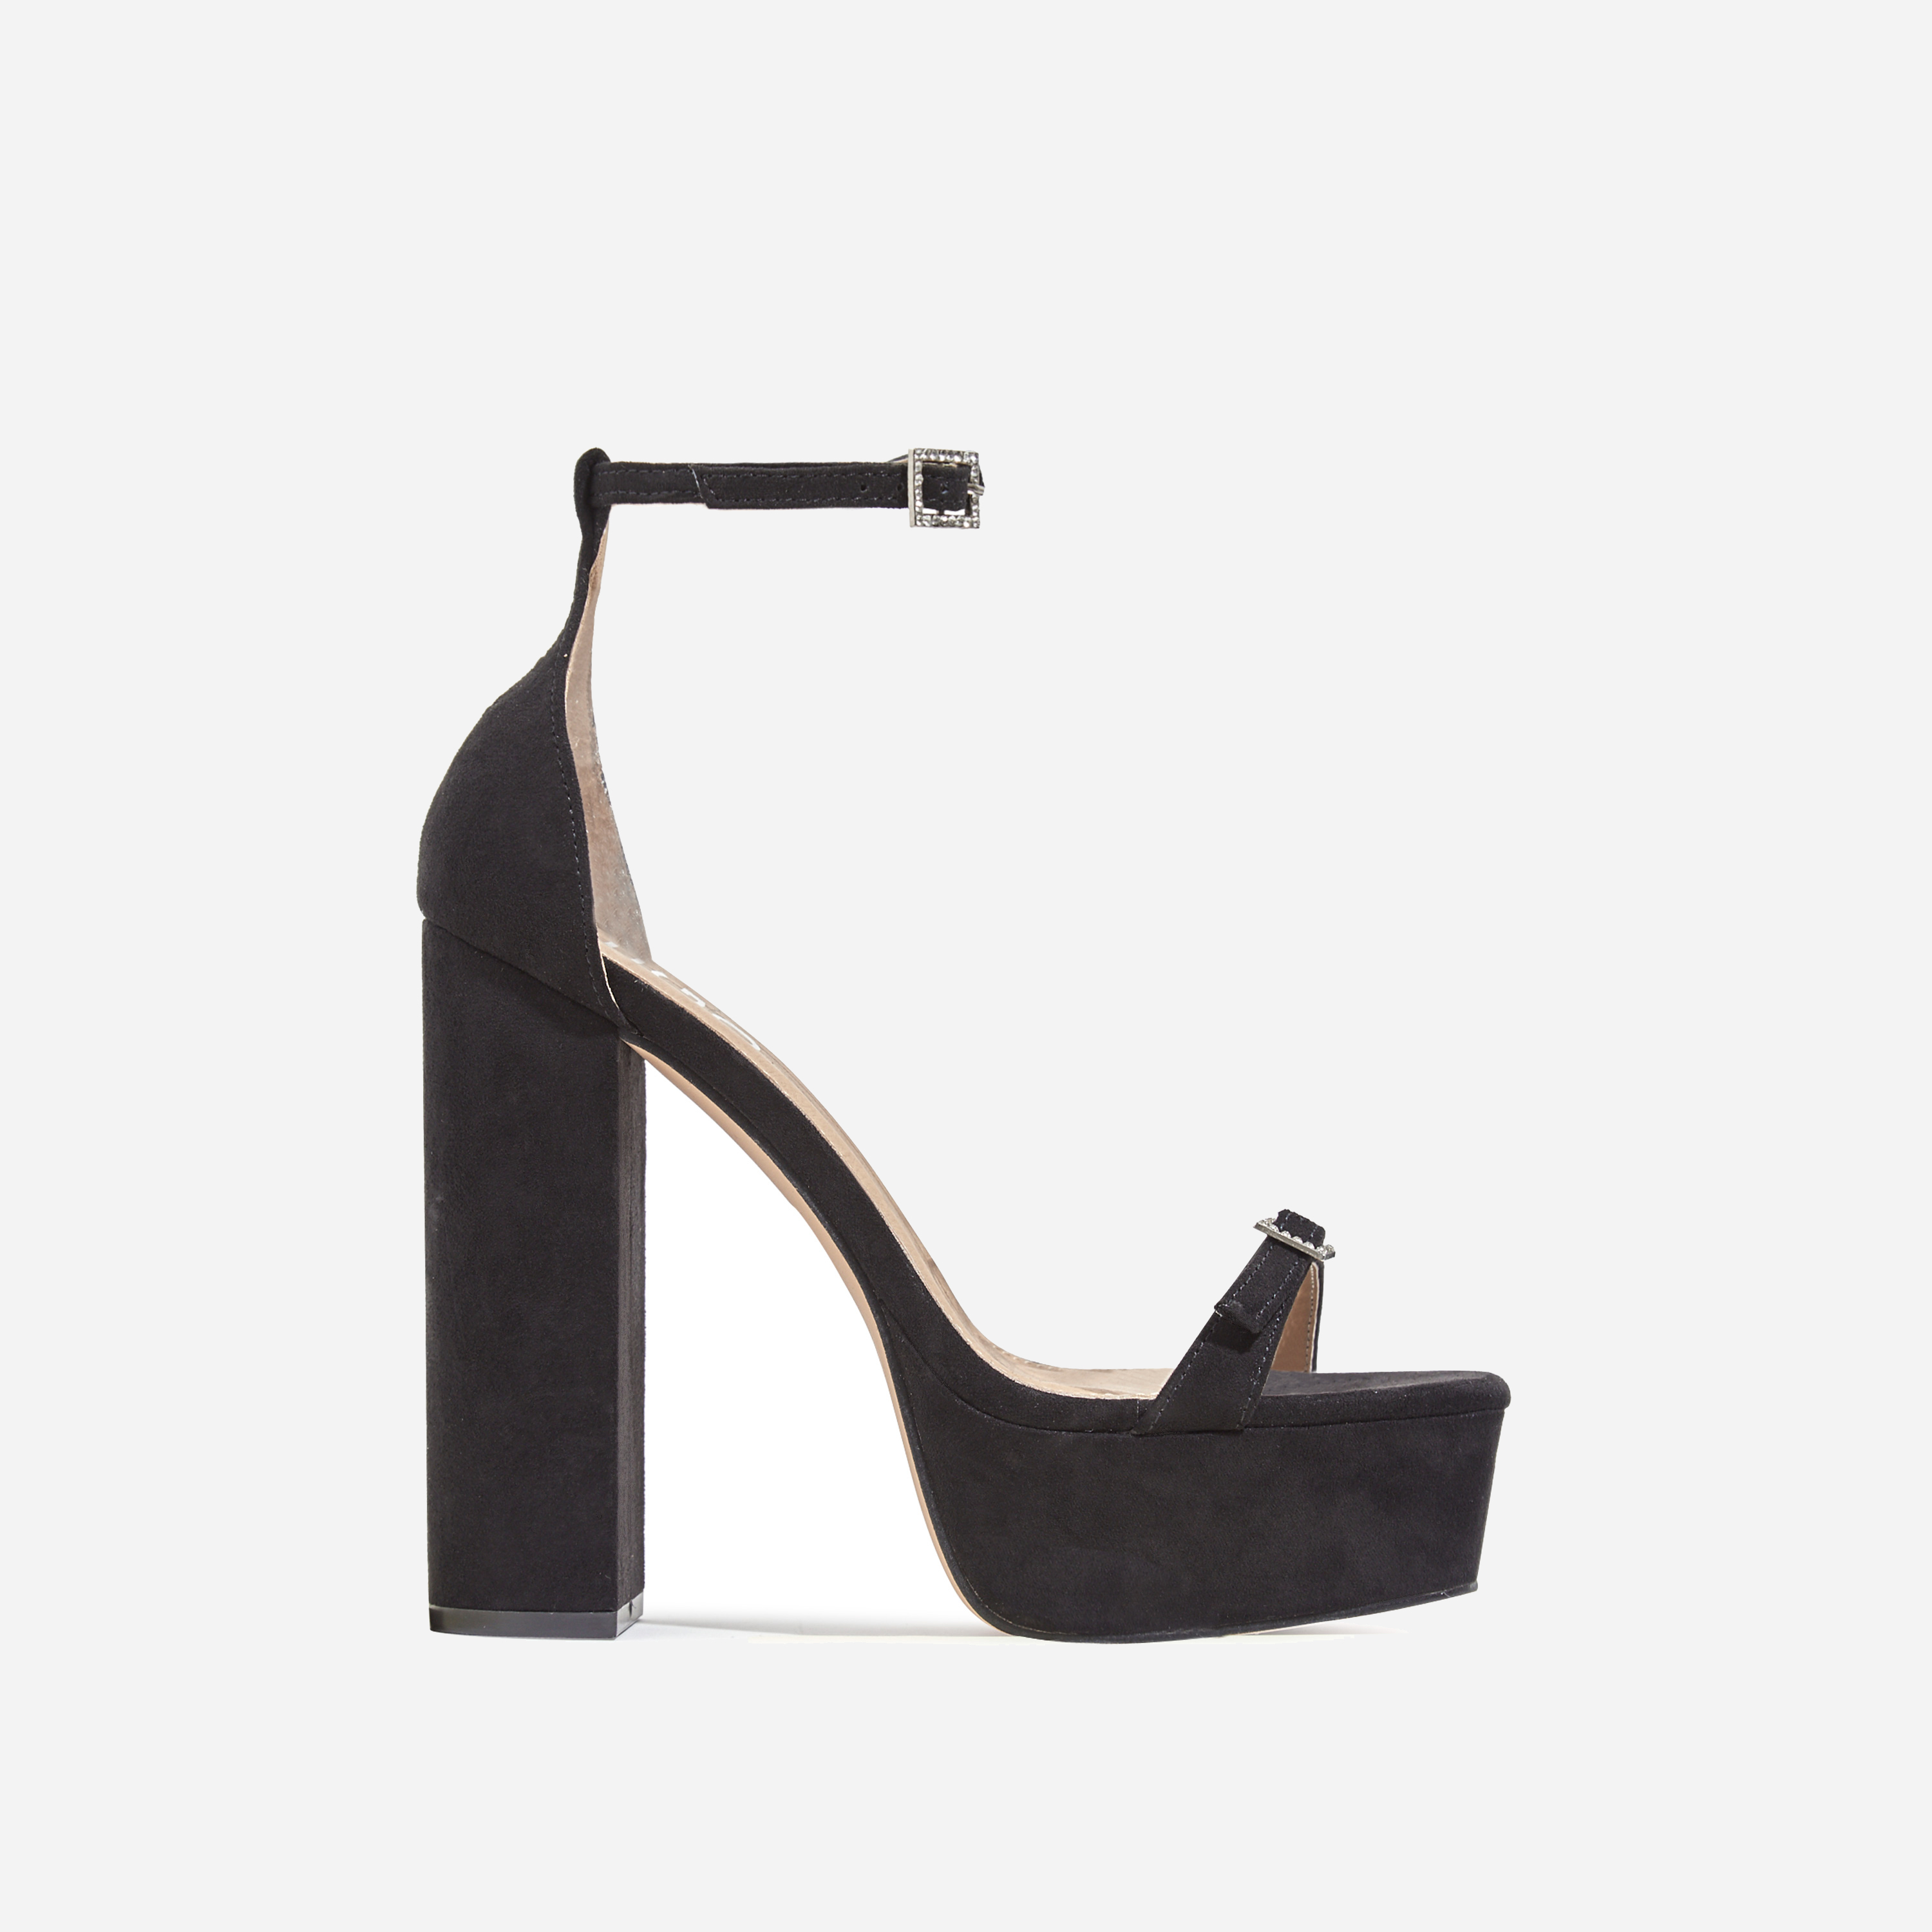 Milan Square Toe Barely There Platform Heel In Black Faux Suede